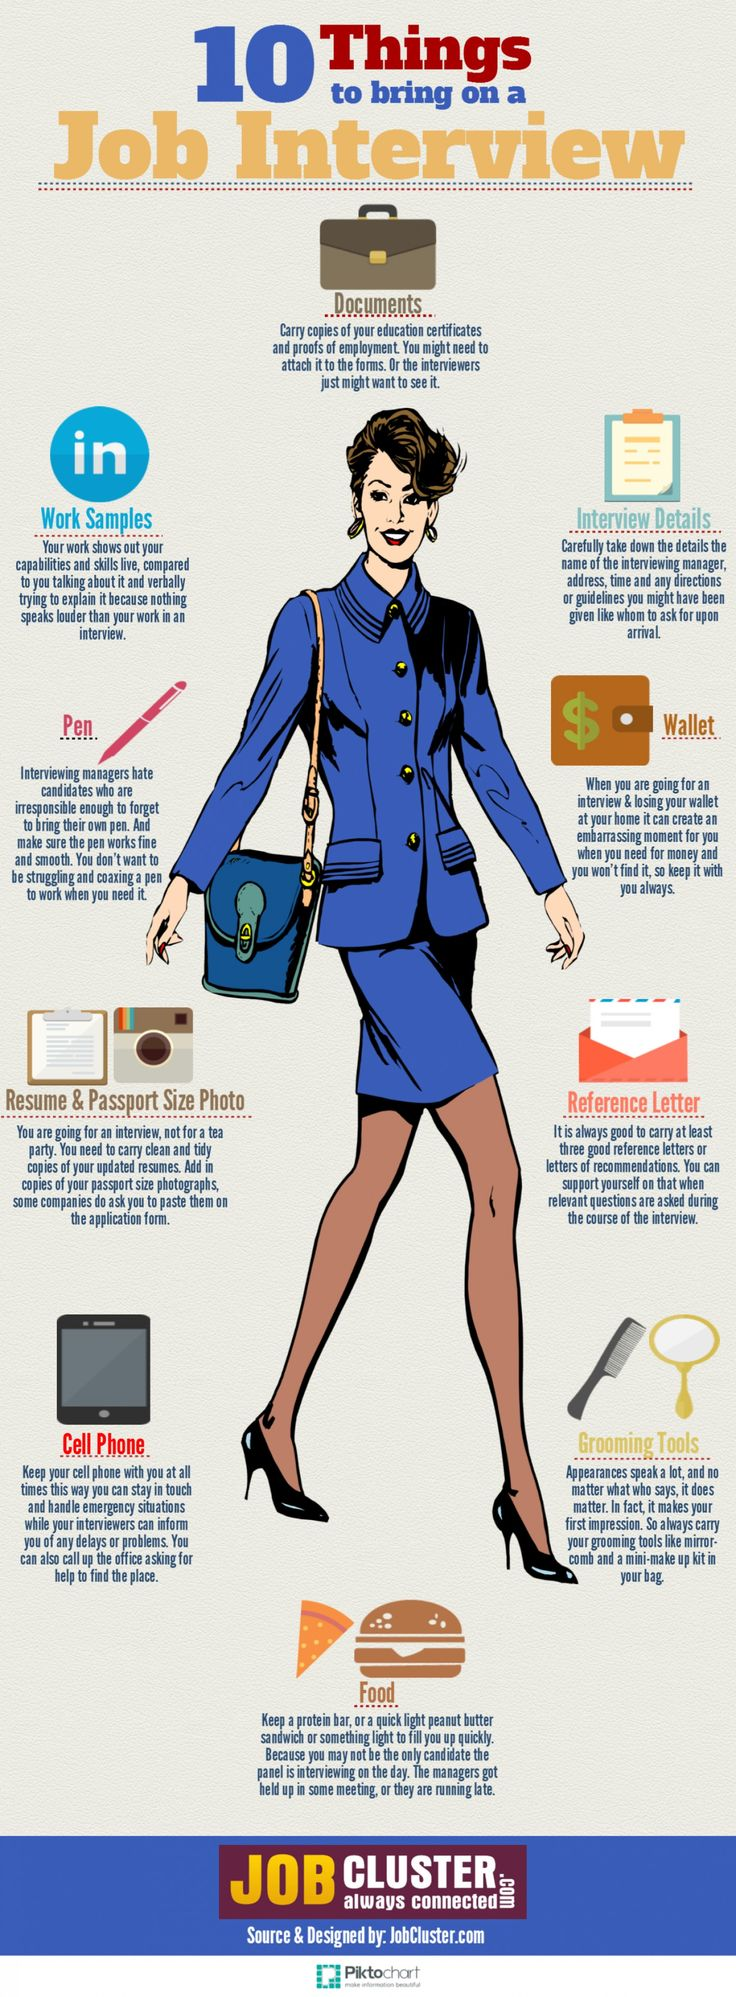 10 Things To Bring On A Job Interview Visual Ly Job Interview Tips Job Interview Infographic Interview Infographic